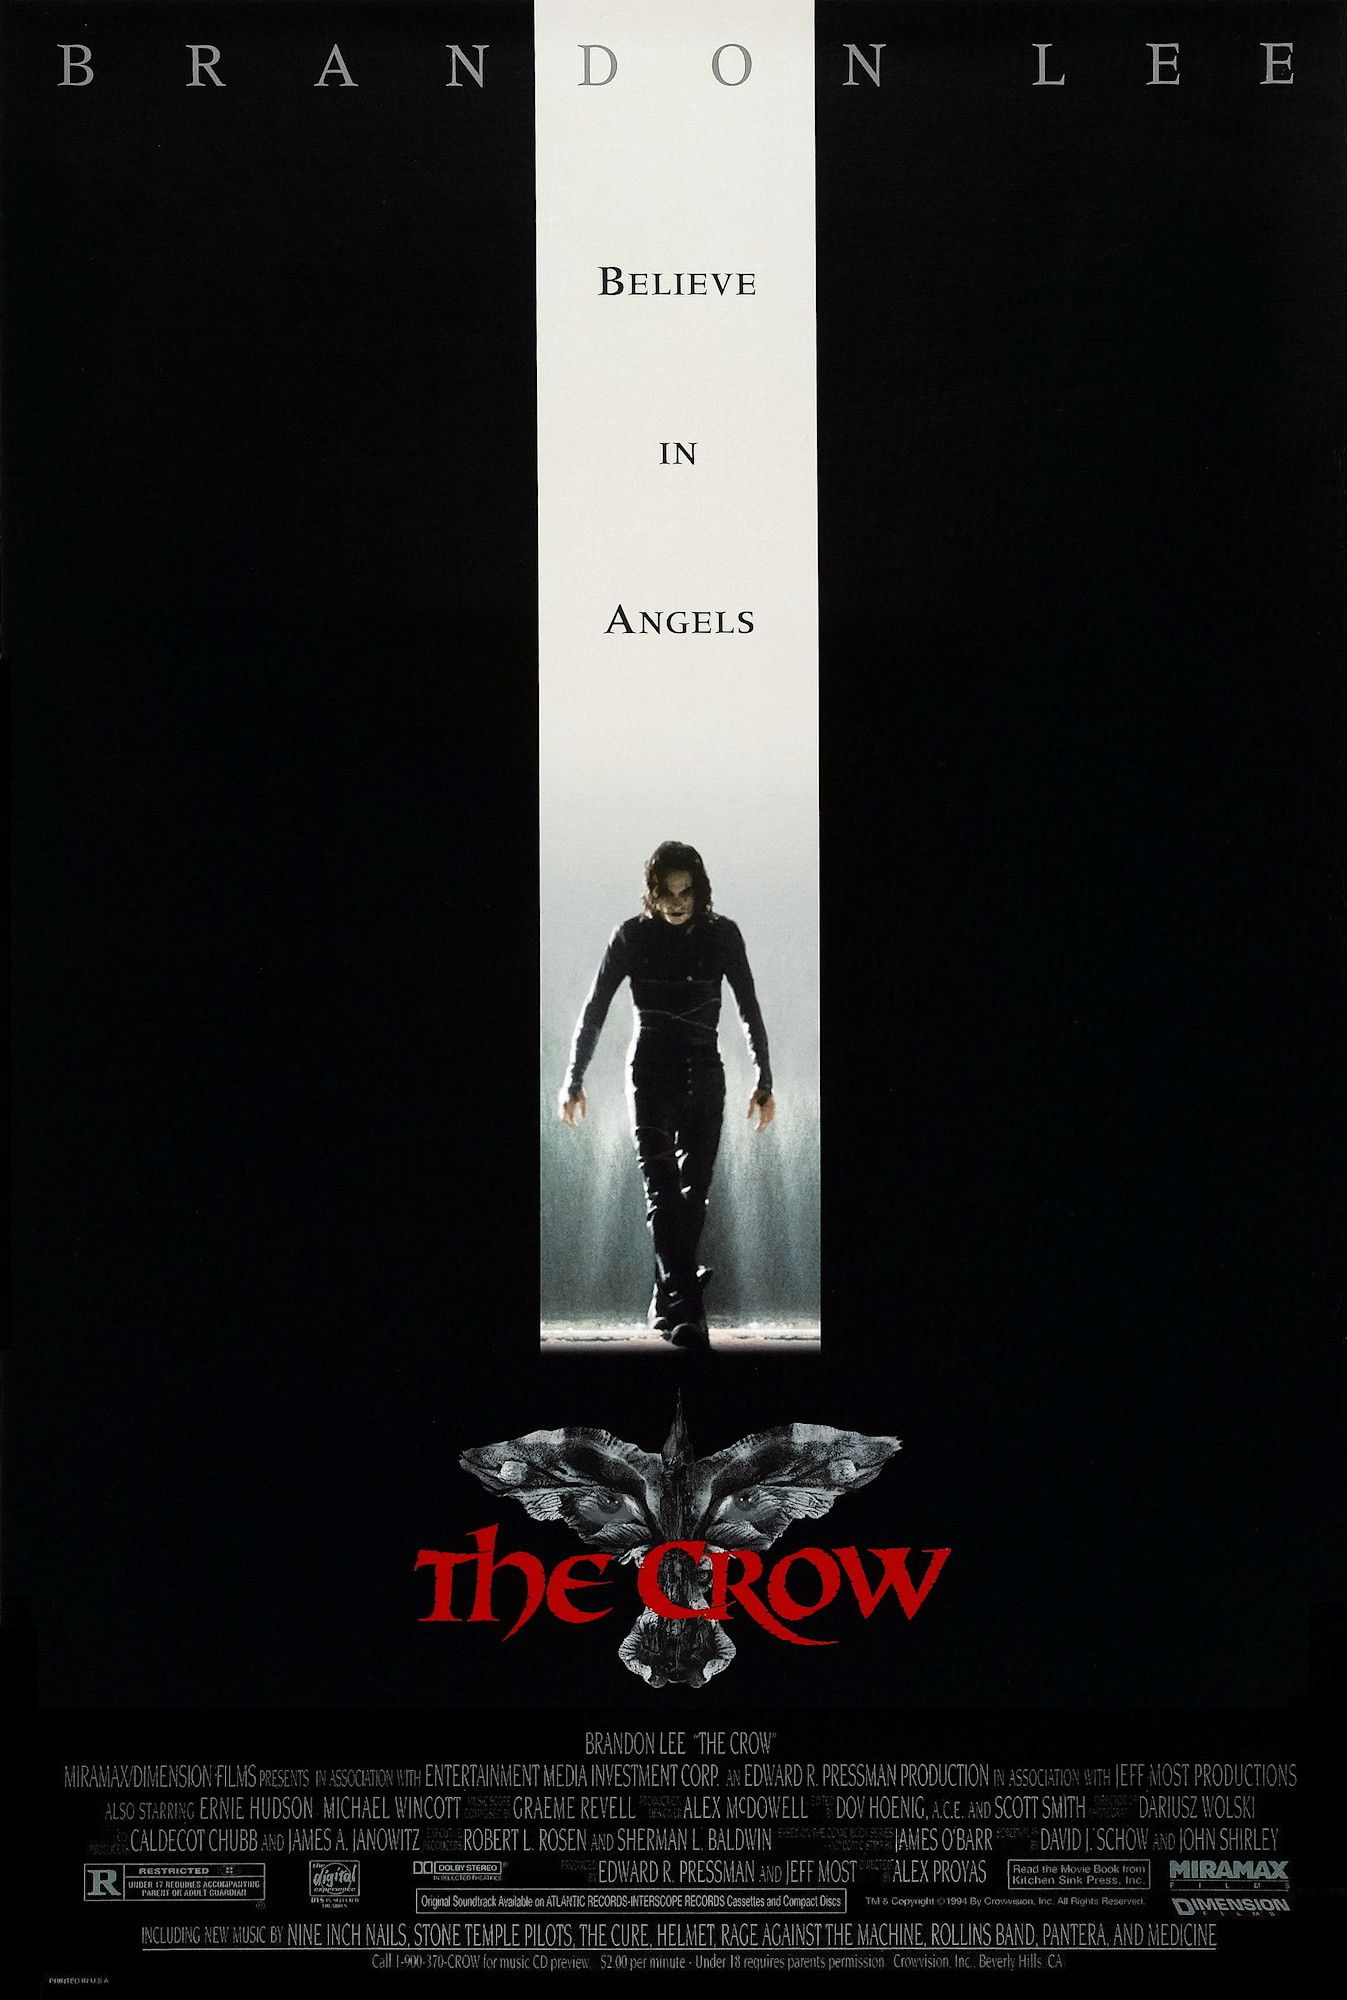 File:The Crow poster.jpg